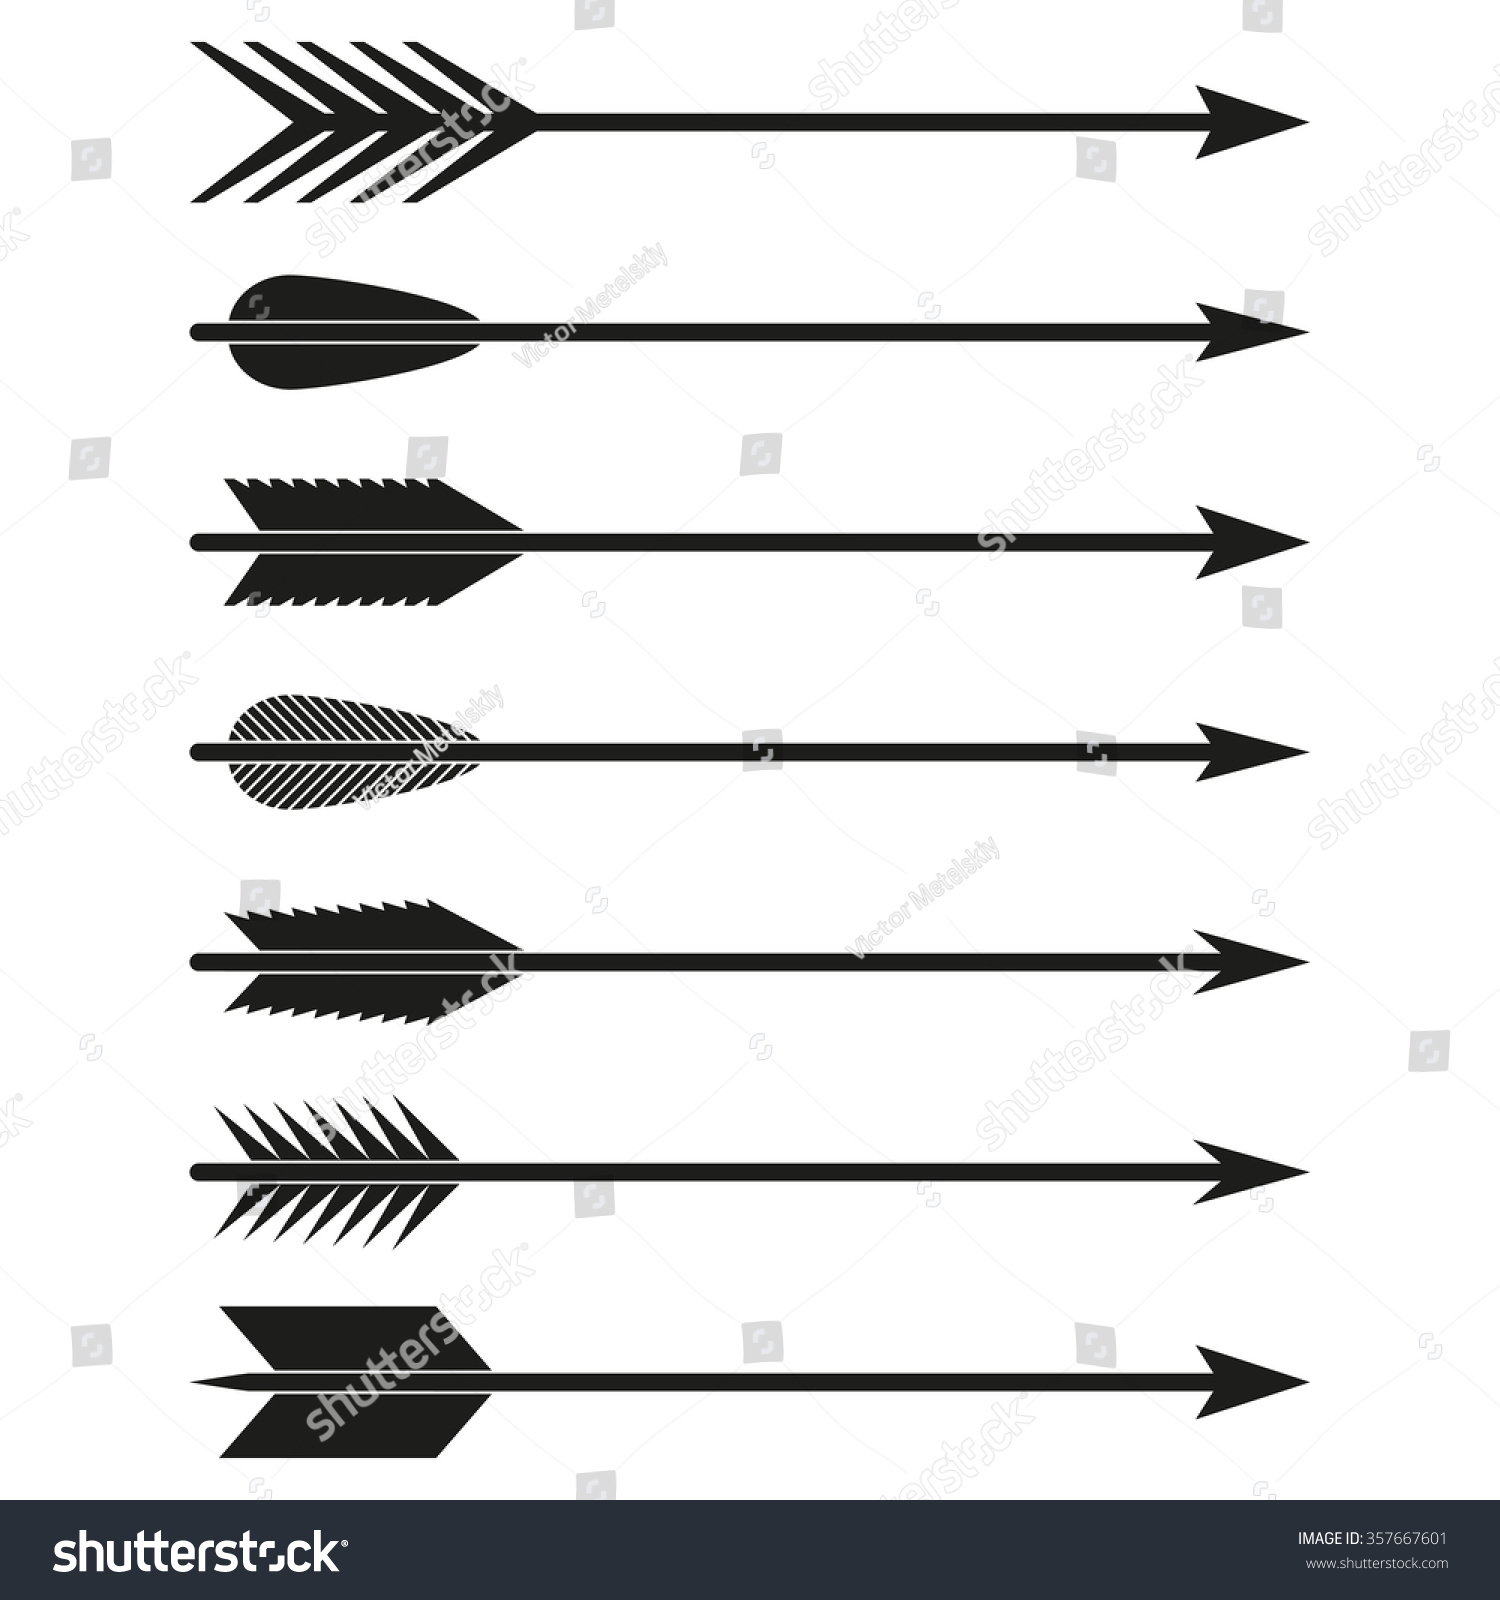 Arrows Set Bow Arrows Archer Symbol Stock Vector 357667601 ...